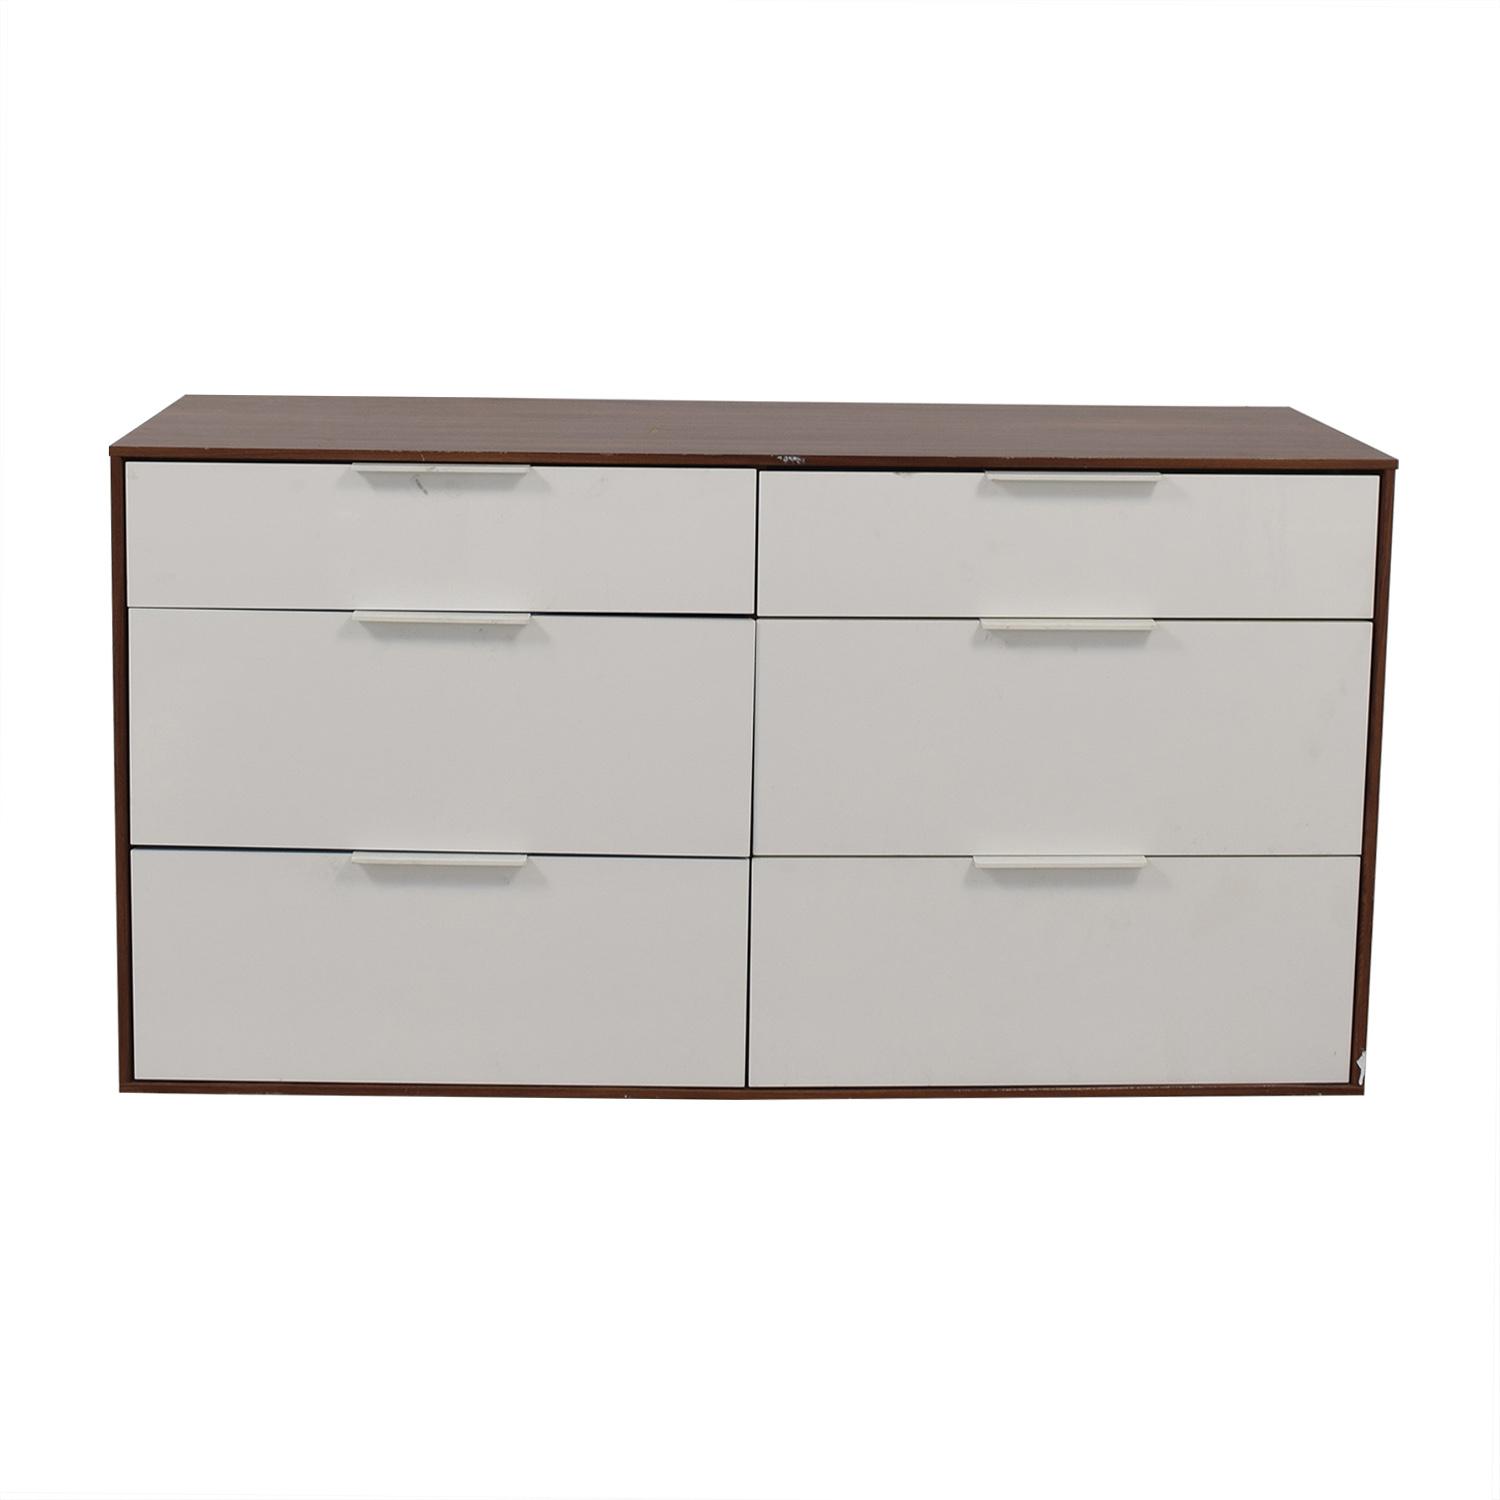 Aurelle Home Aurelle Home White Gloss Six-Drawer Dresser nyc